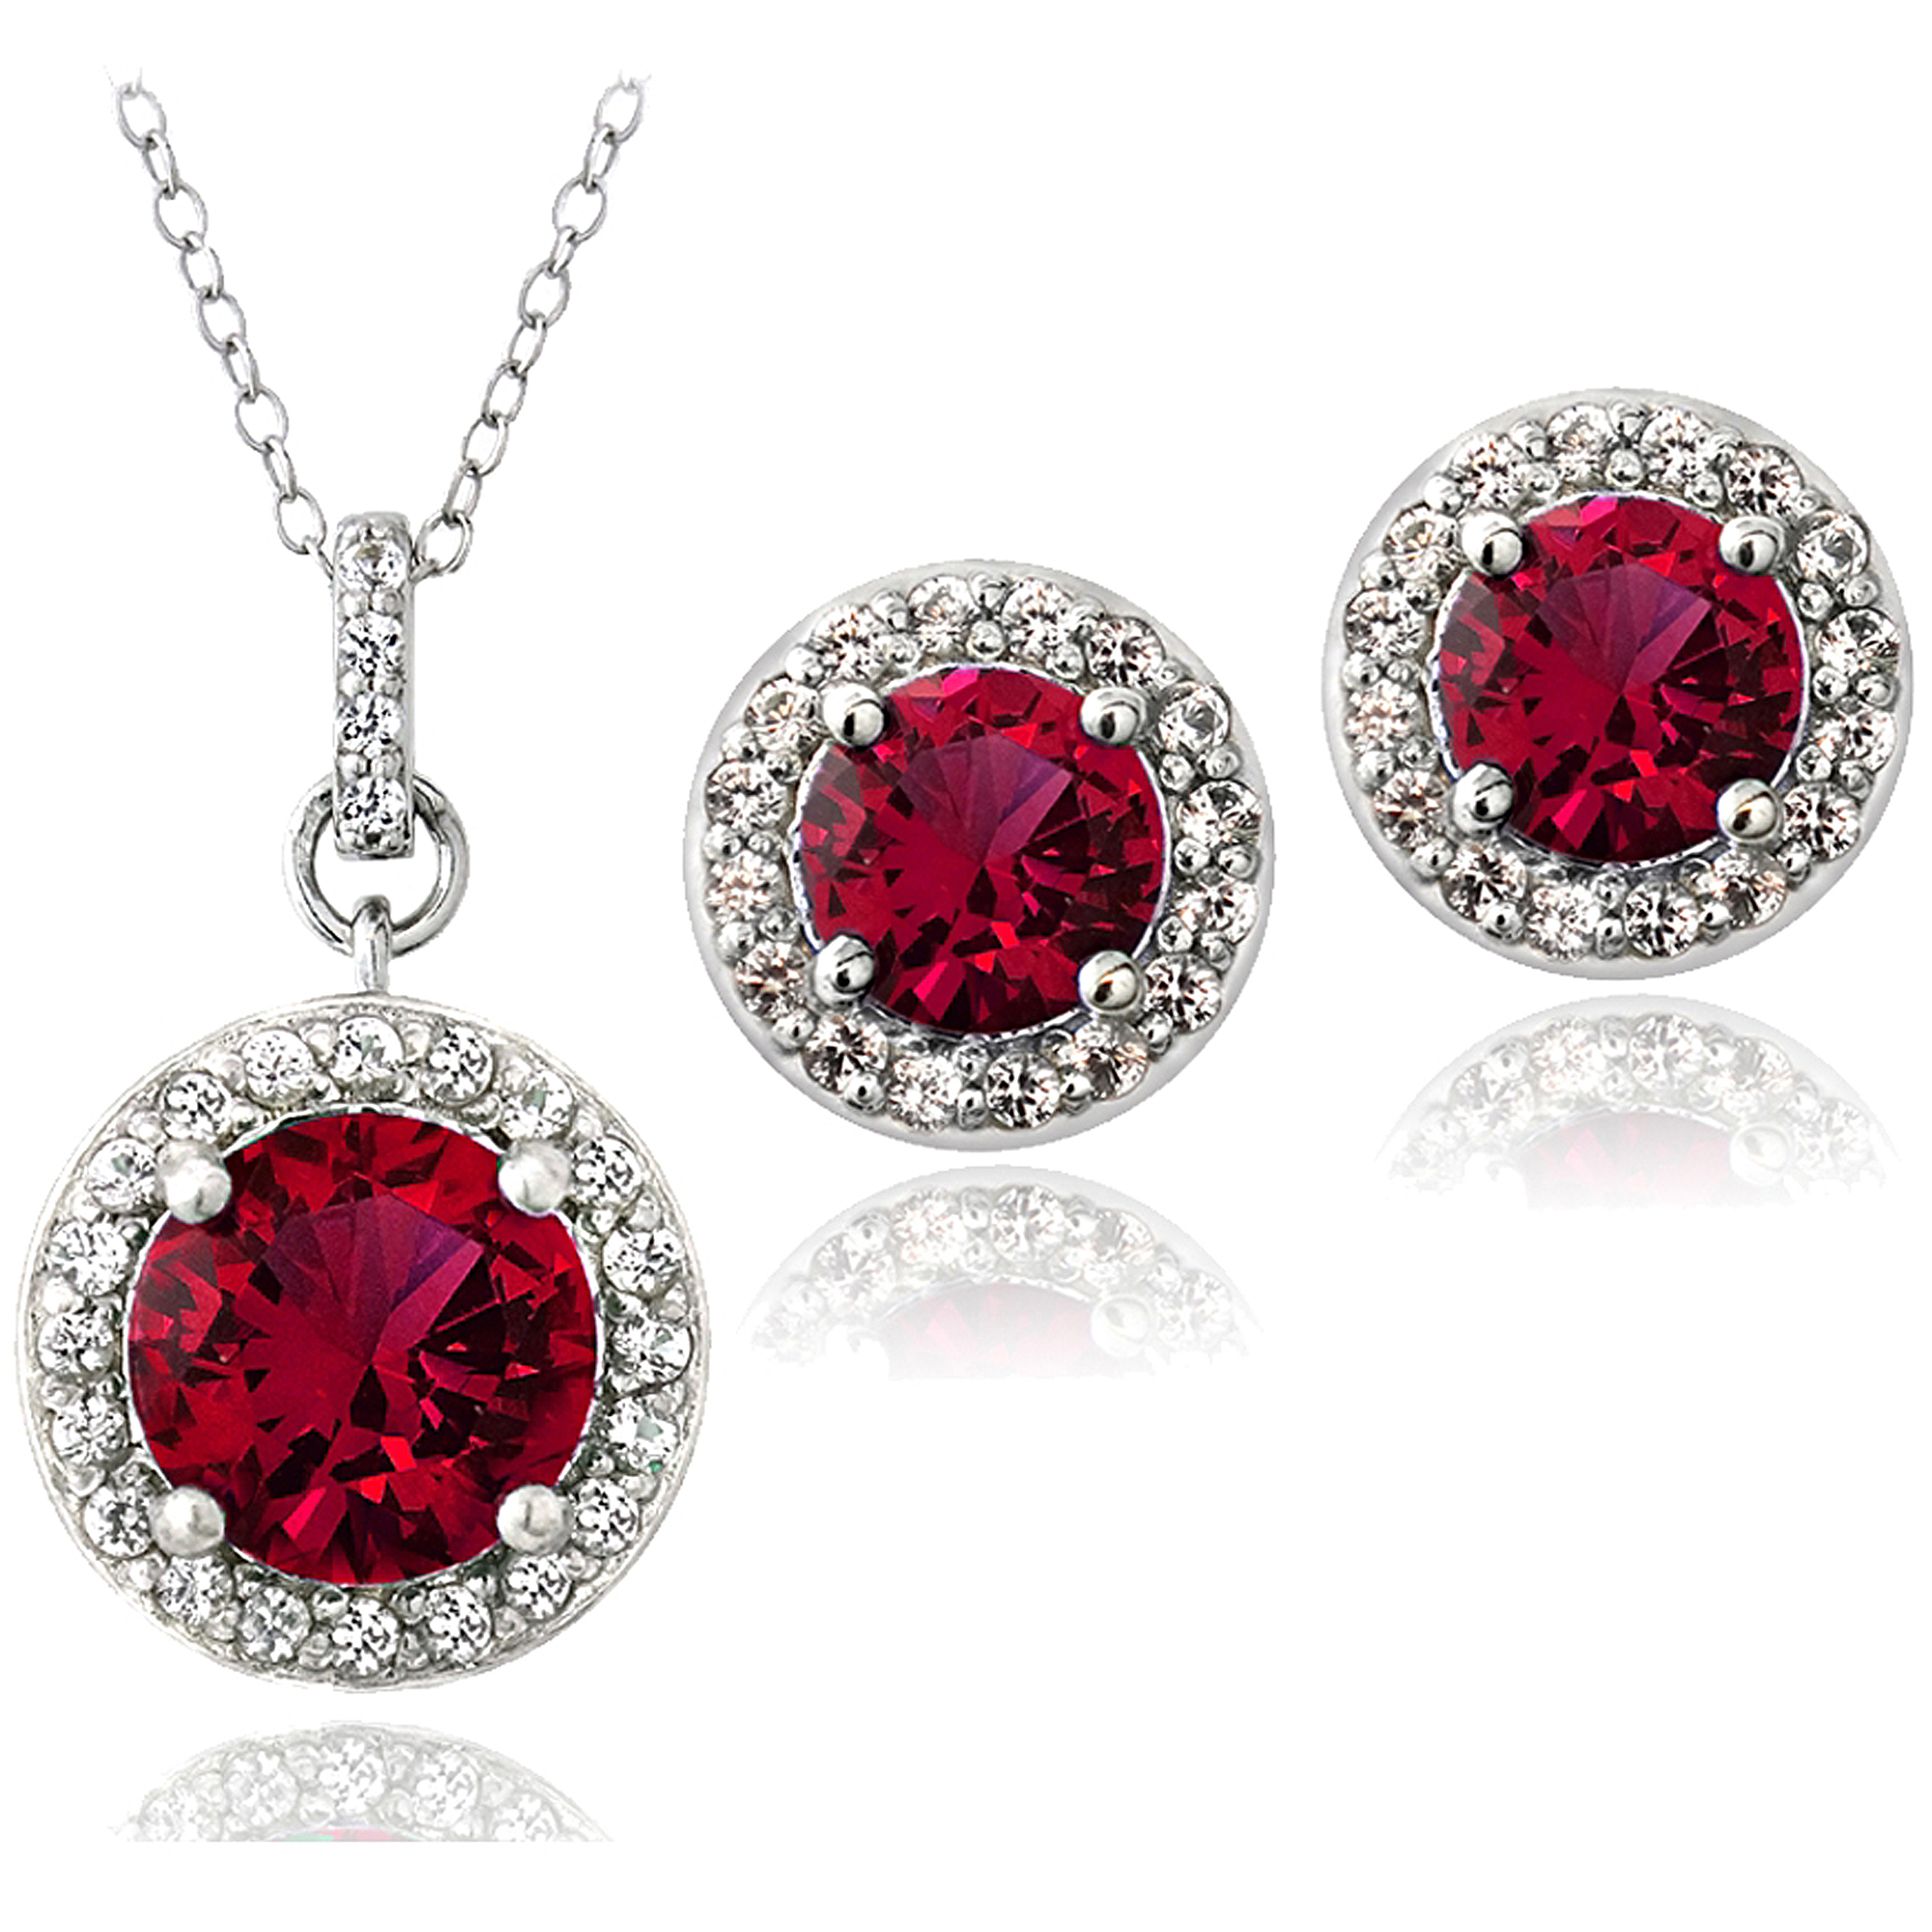 5.25 Carat T.G.W. Created Ruby and Created White Sapphire Sterling Silver Round Stud Earrings and Necklace Set